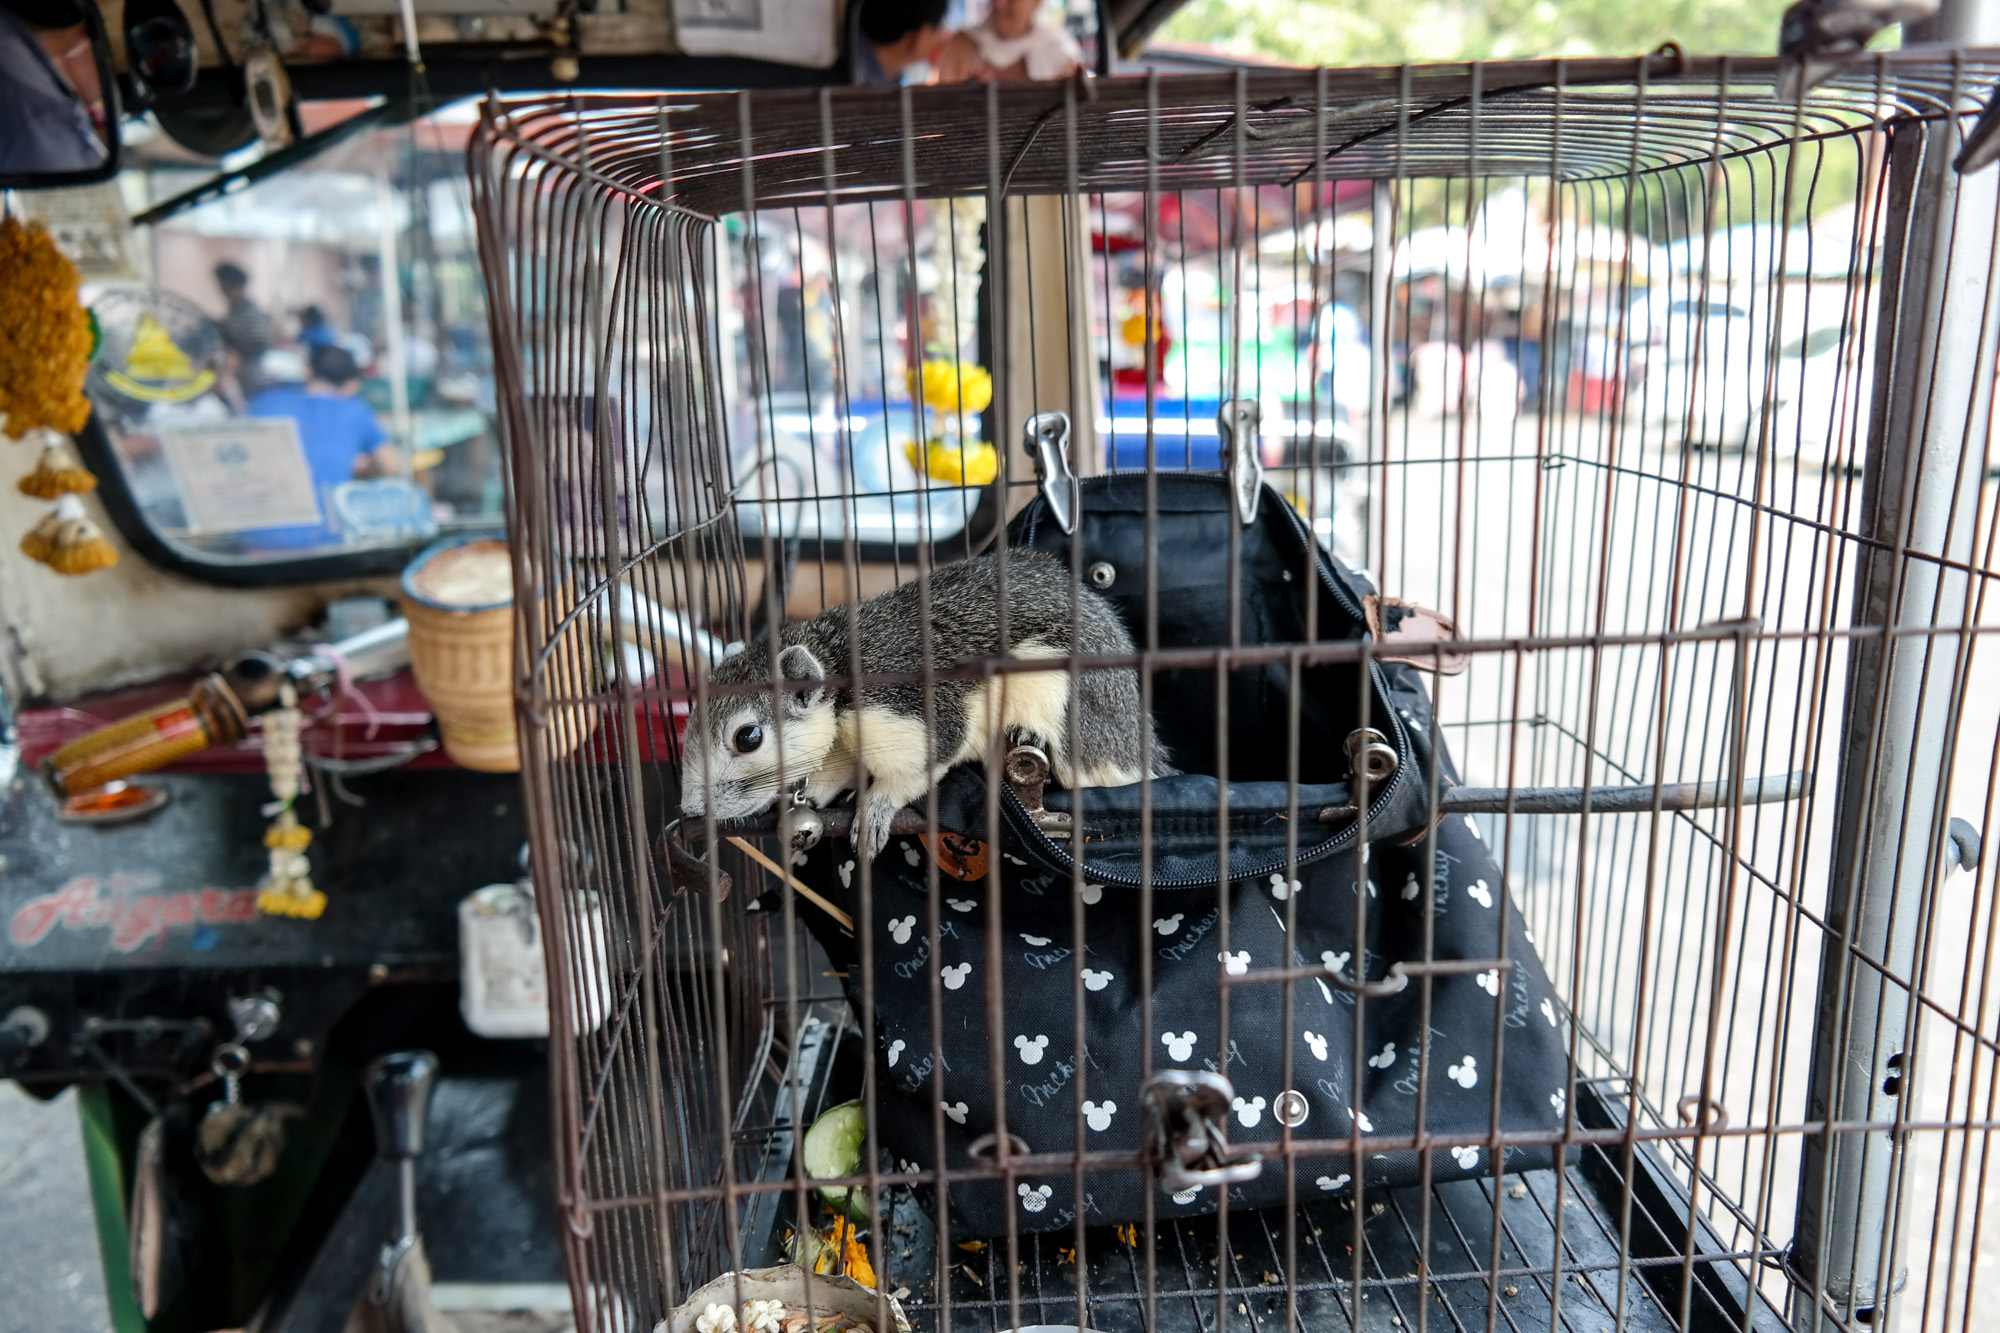 The 22 months old squirrel of our tuk tuk driver who traveledloyally with us through town. Cruel but cute.